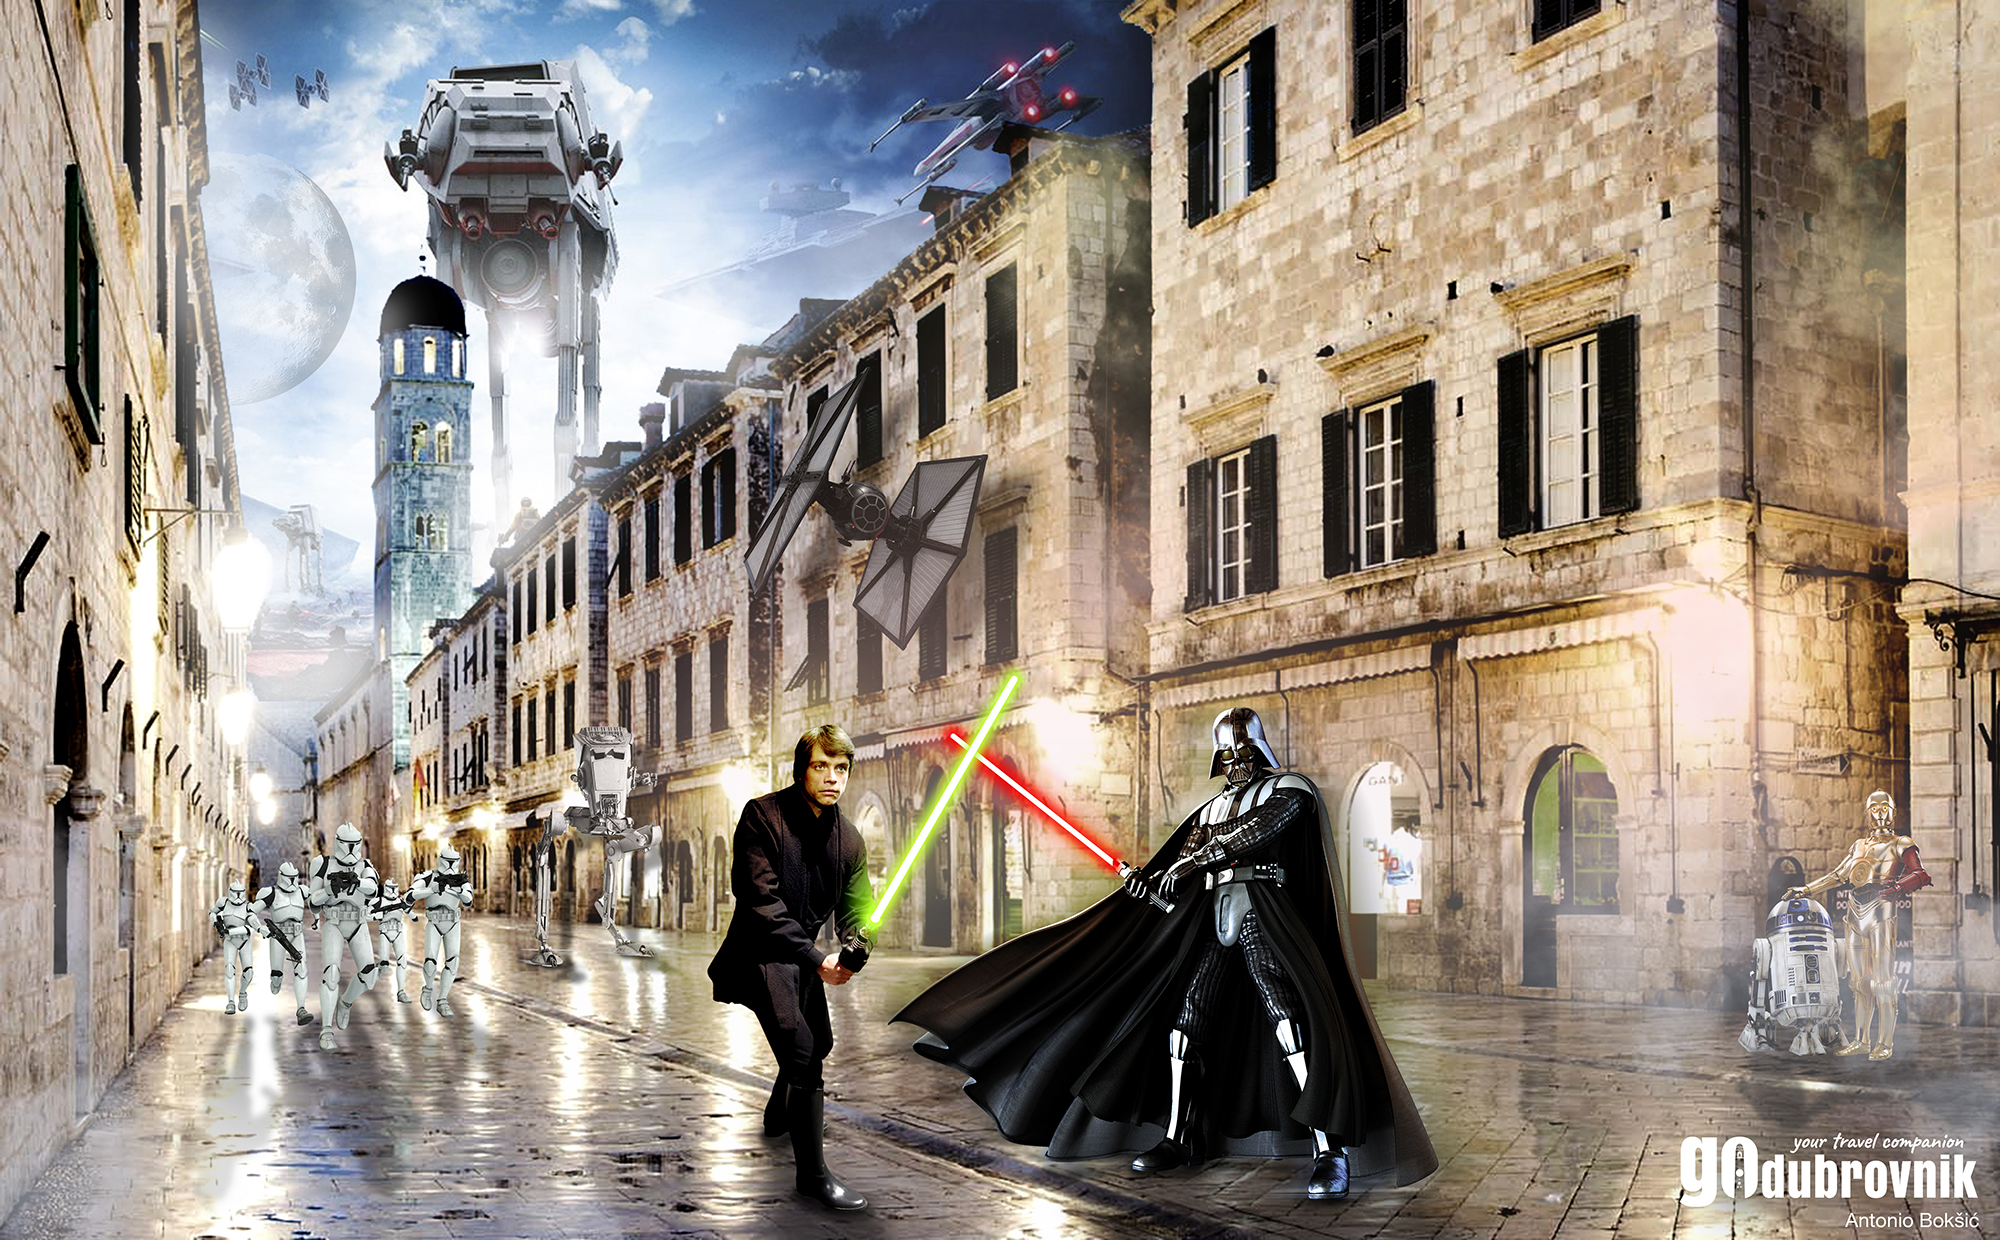 darth vader croatia star wars go dubrovnik